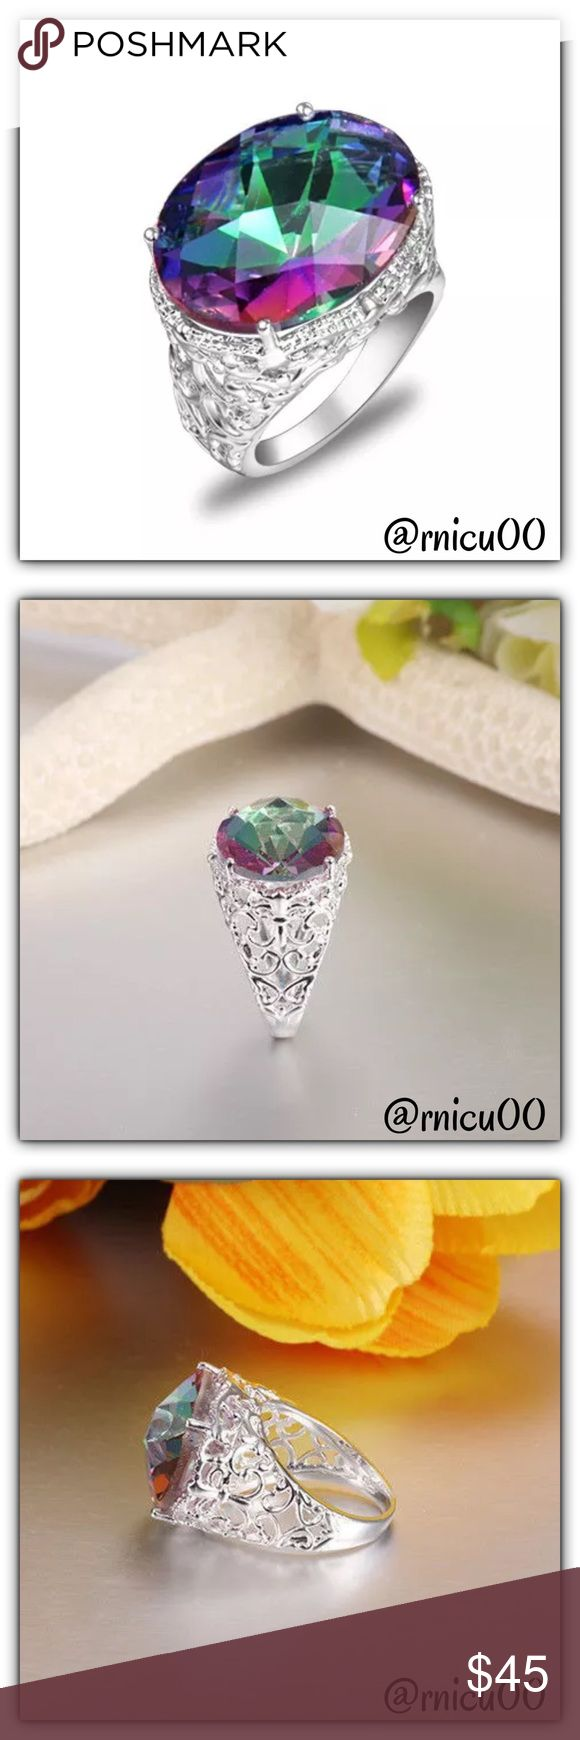 """🆕46ct Rainbow Mystic Topaz 925 Sterling Ring! Stunning is the first word that comes to mind here!! Rainbow Mystic Topaz is such a Beautiful Gemstone; this is set on a Intricately detailed Sterling Silver Band. Definitely a show stopper!  - Metal: Stamped """"925"""" Sterling Silver  - Gem: Rainbow Mystic Topaz - Stone size: 23X18mm (0.9""""X0.7"""") - Weight: 46tcw - Will Ship Securely in Jewelry box👌  *NO TRADES *Prices are FIRM-Listed at Lowest Price Unless BUNDLED! *Sales are Final-Please Read…"""